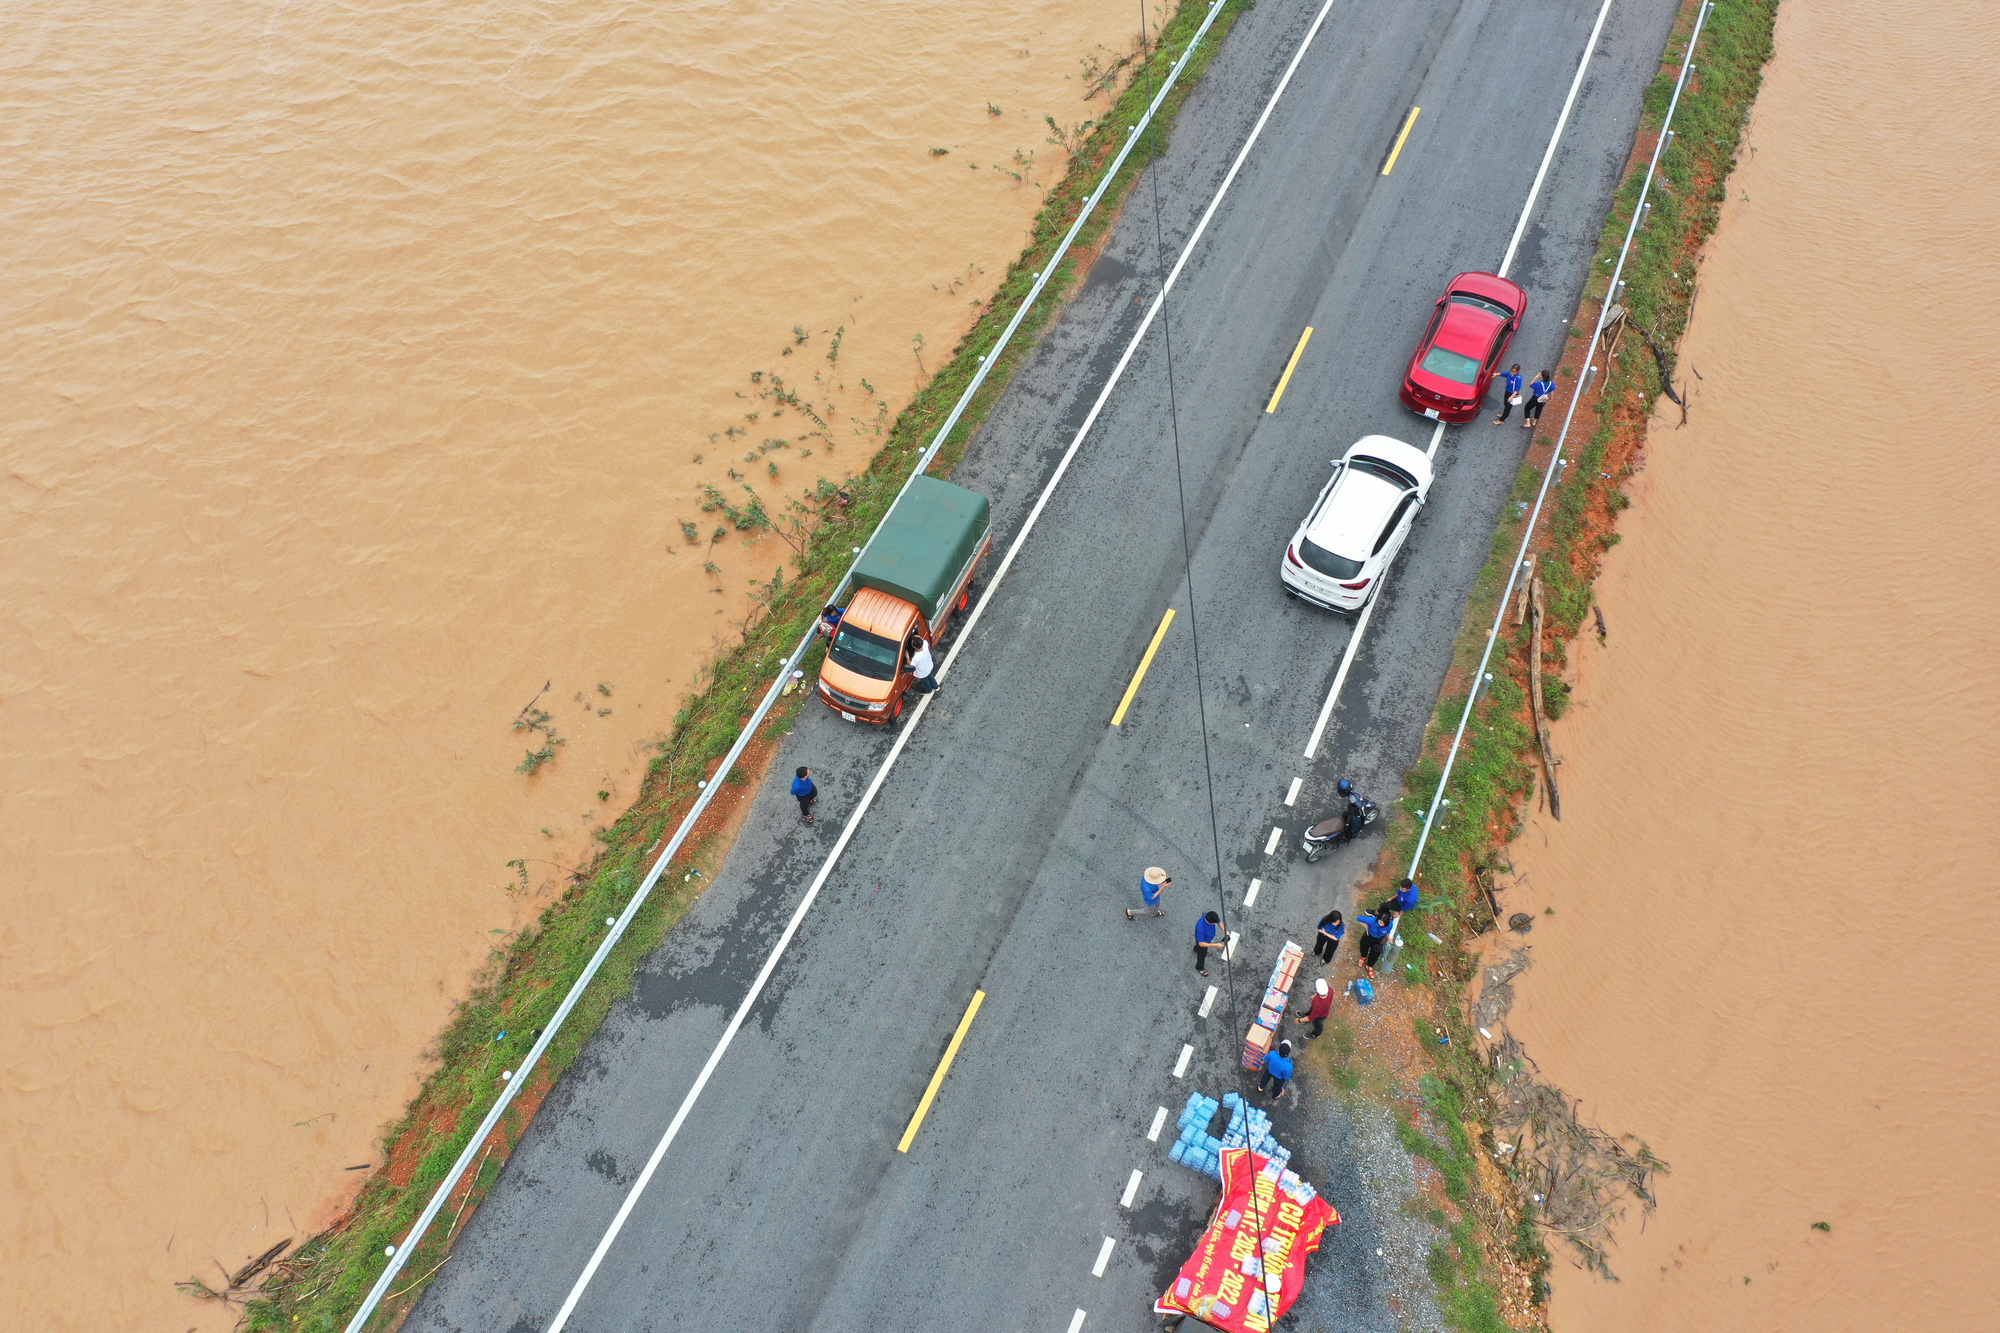 Supplies are brought to Trieu Phong District in Quang Tri Province, Vietnam to assist residents in flooded areas. Photo: Truong Trung / Tuoi Tre